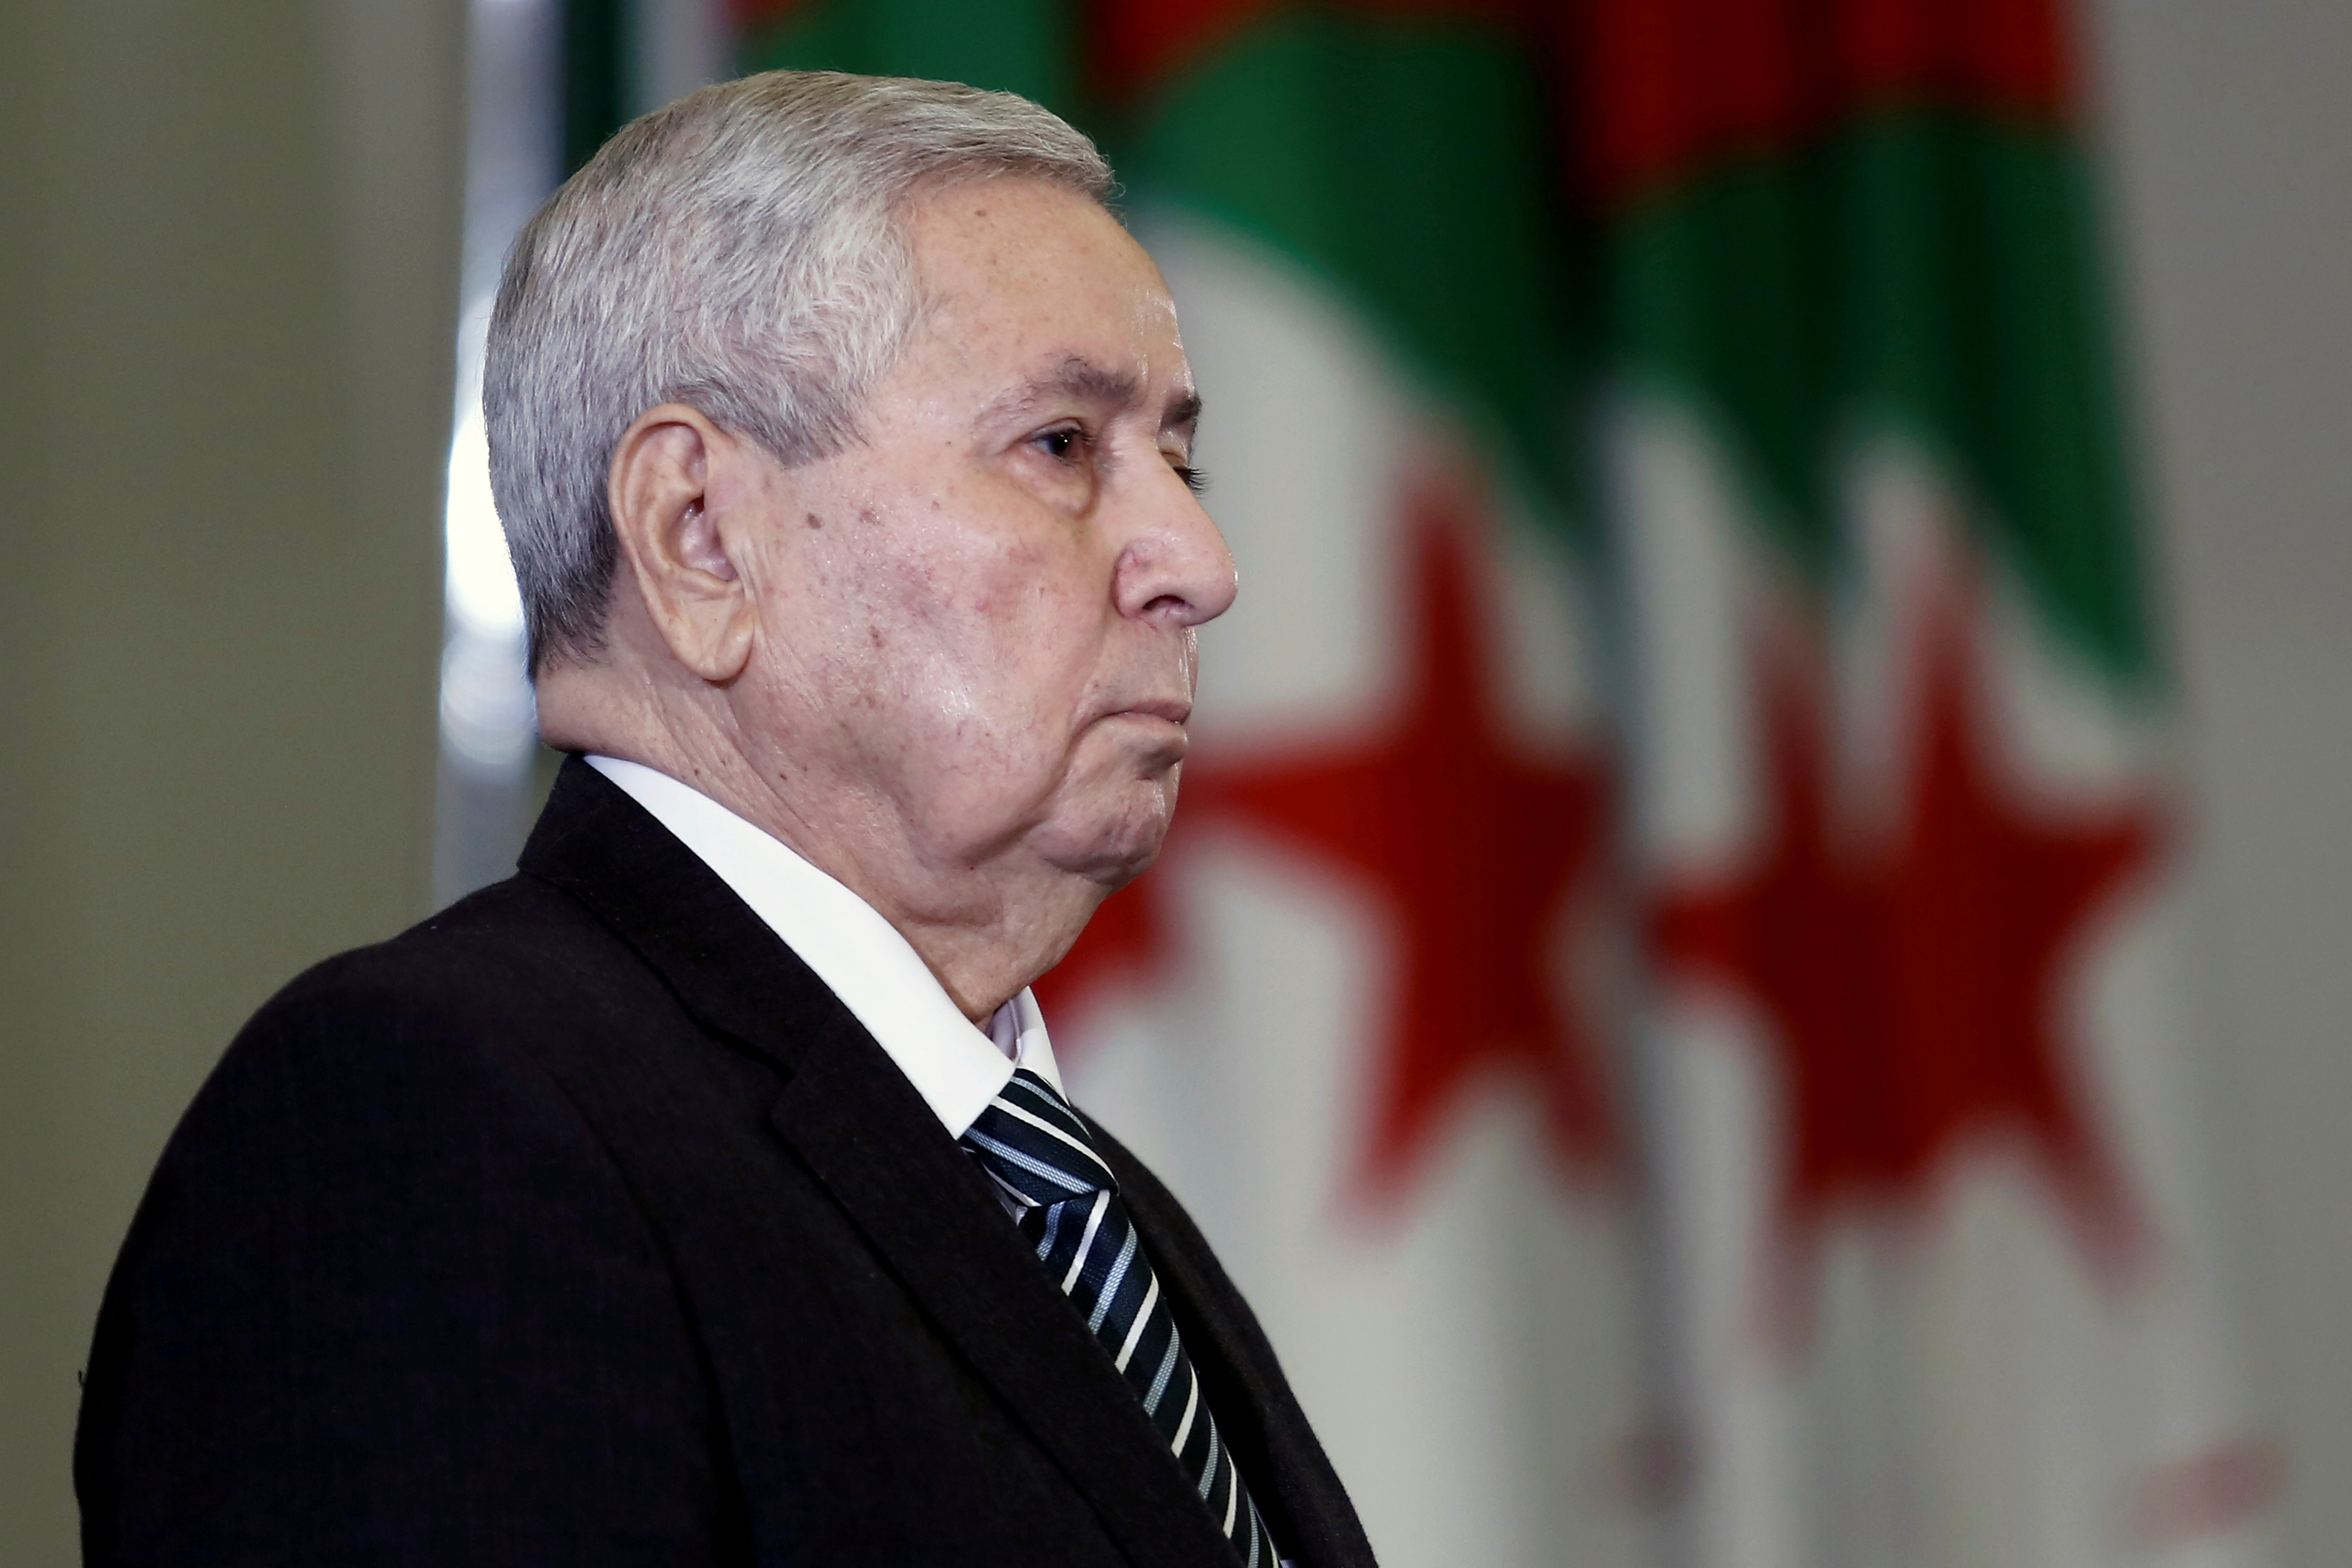 Algerian upper house chairman Abdelkader Bensalah is pictured after being appointed as interim president by Algeria's parliament, following the resignation of Abdelaziz Bouteflika in Algiers, Algeria April 9, 2019. REUTERS/Ramzi Boudina/File Photo